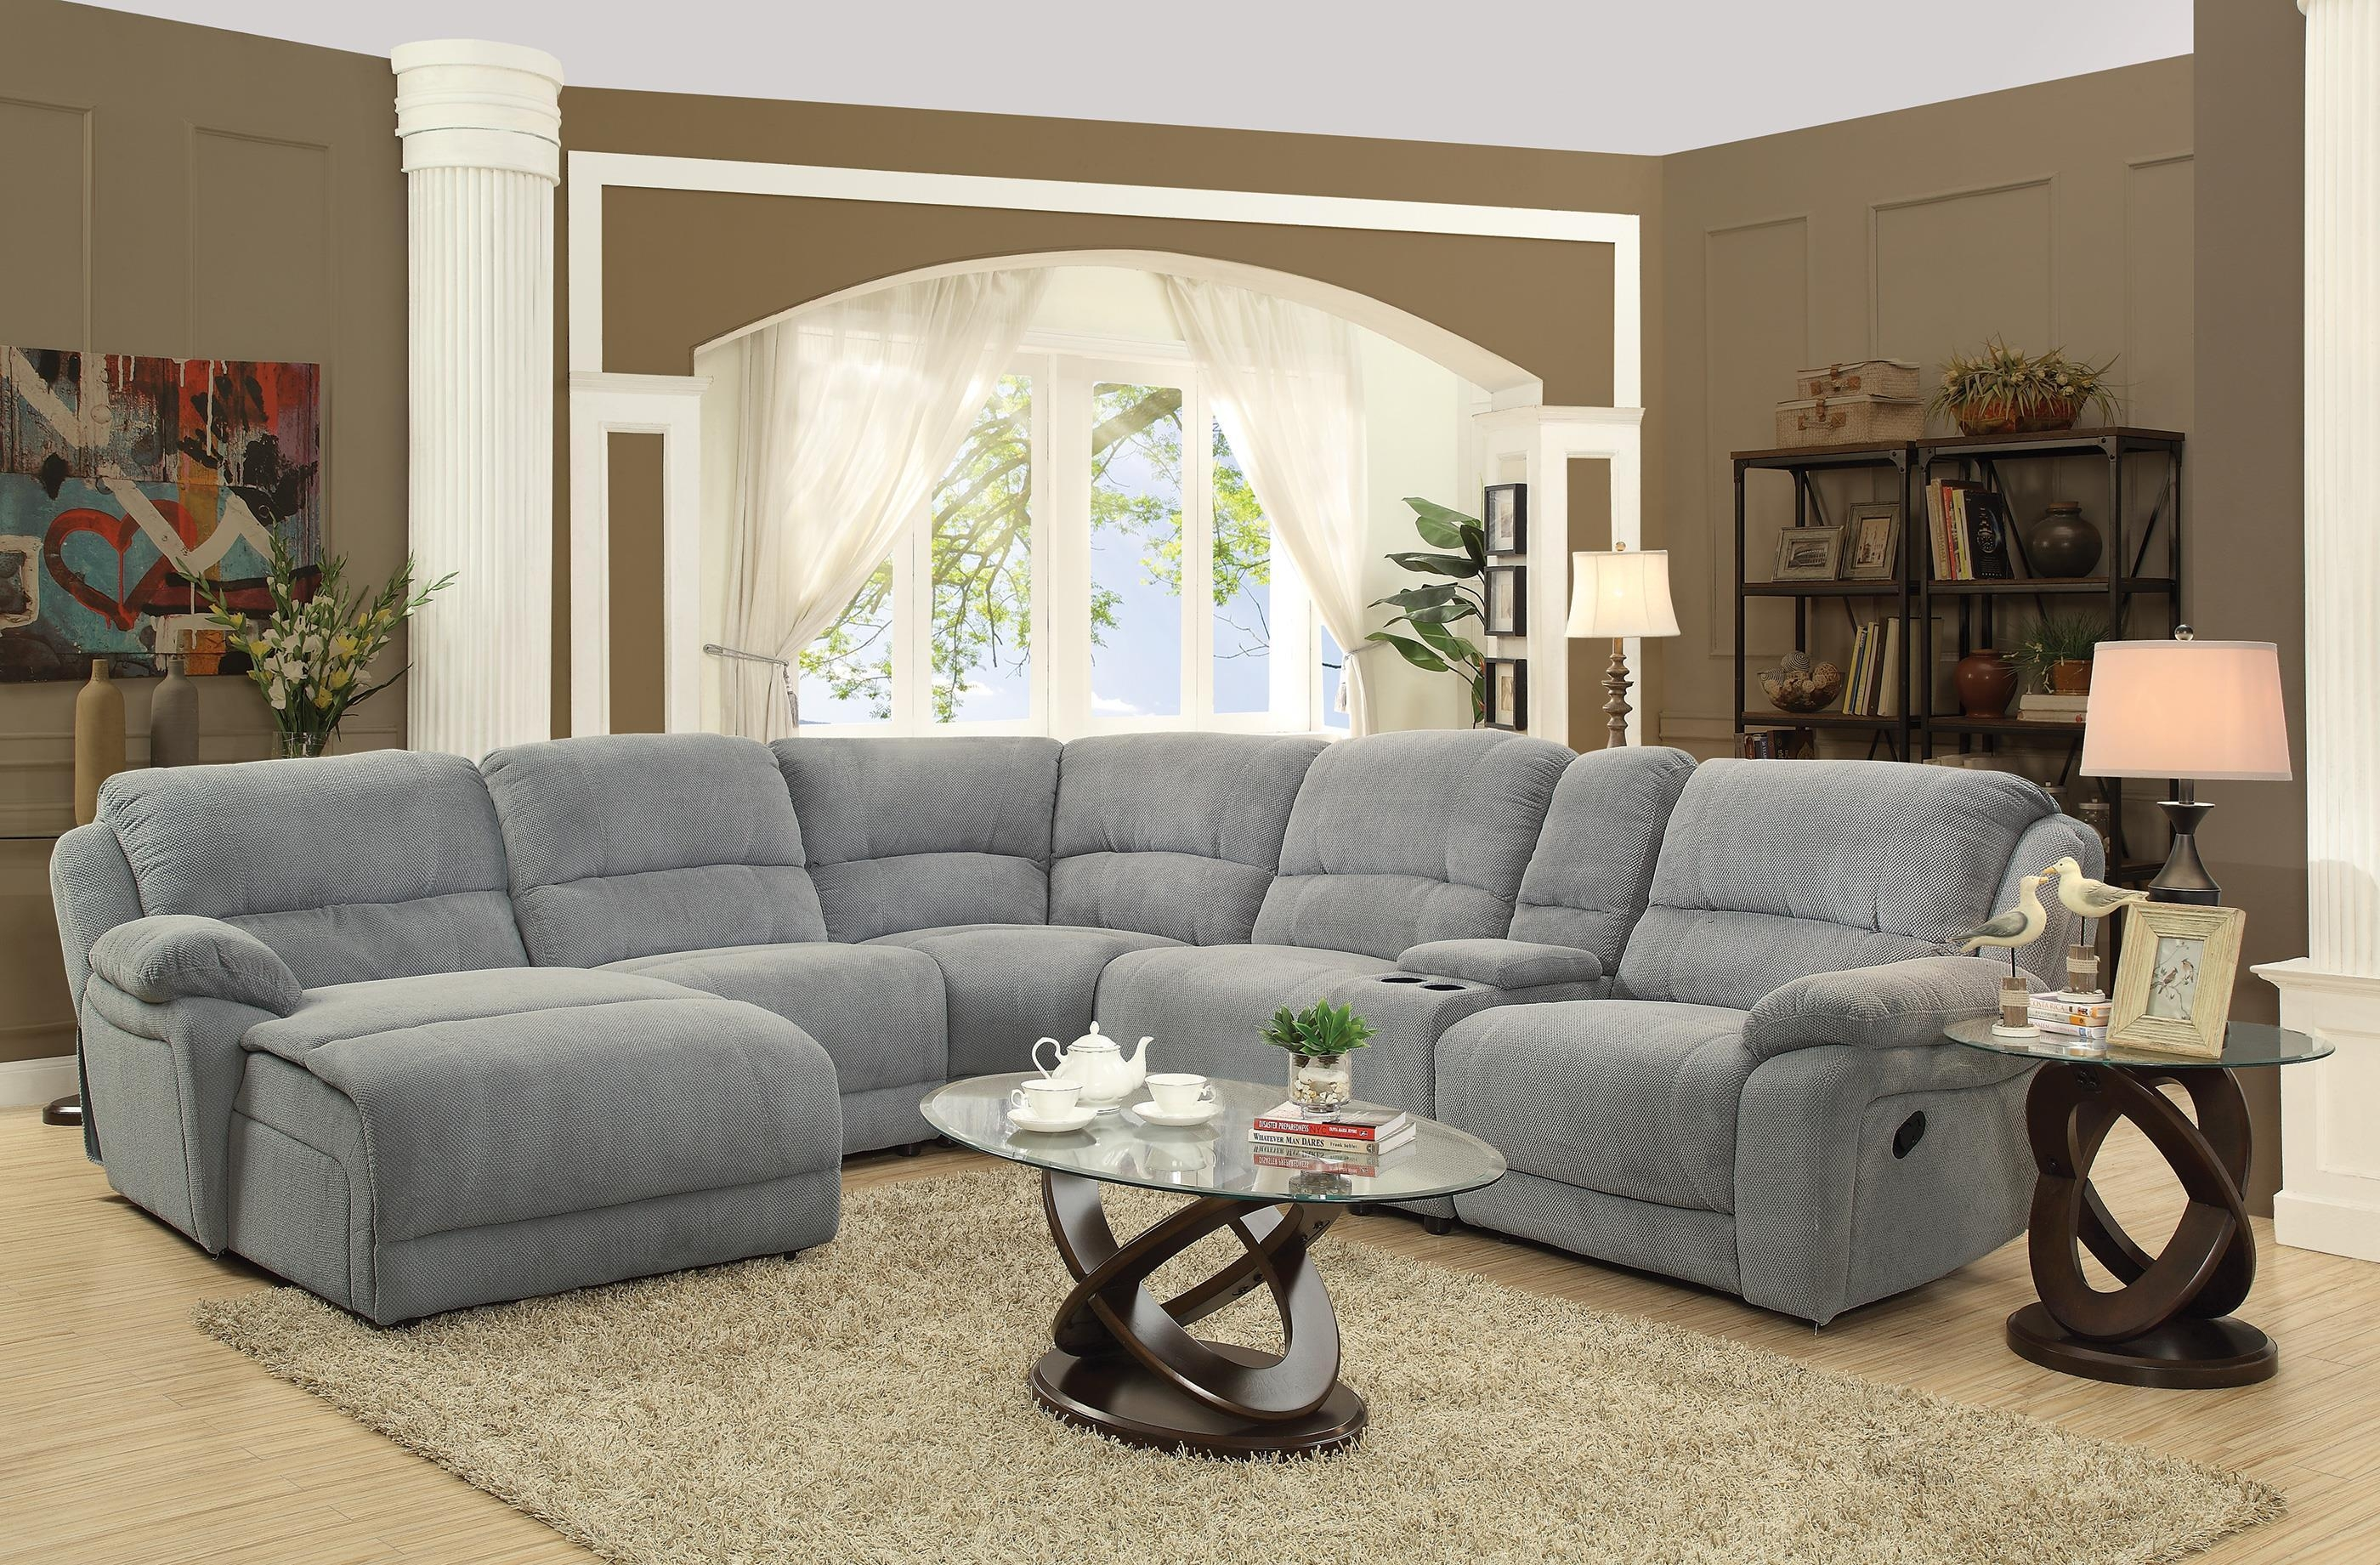 Coaster Mackenzie Silver 6 Piece Reclining Sectional Sofa With With 6 Piece Sectional Sofas Couches (View 6 of 20)